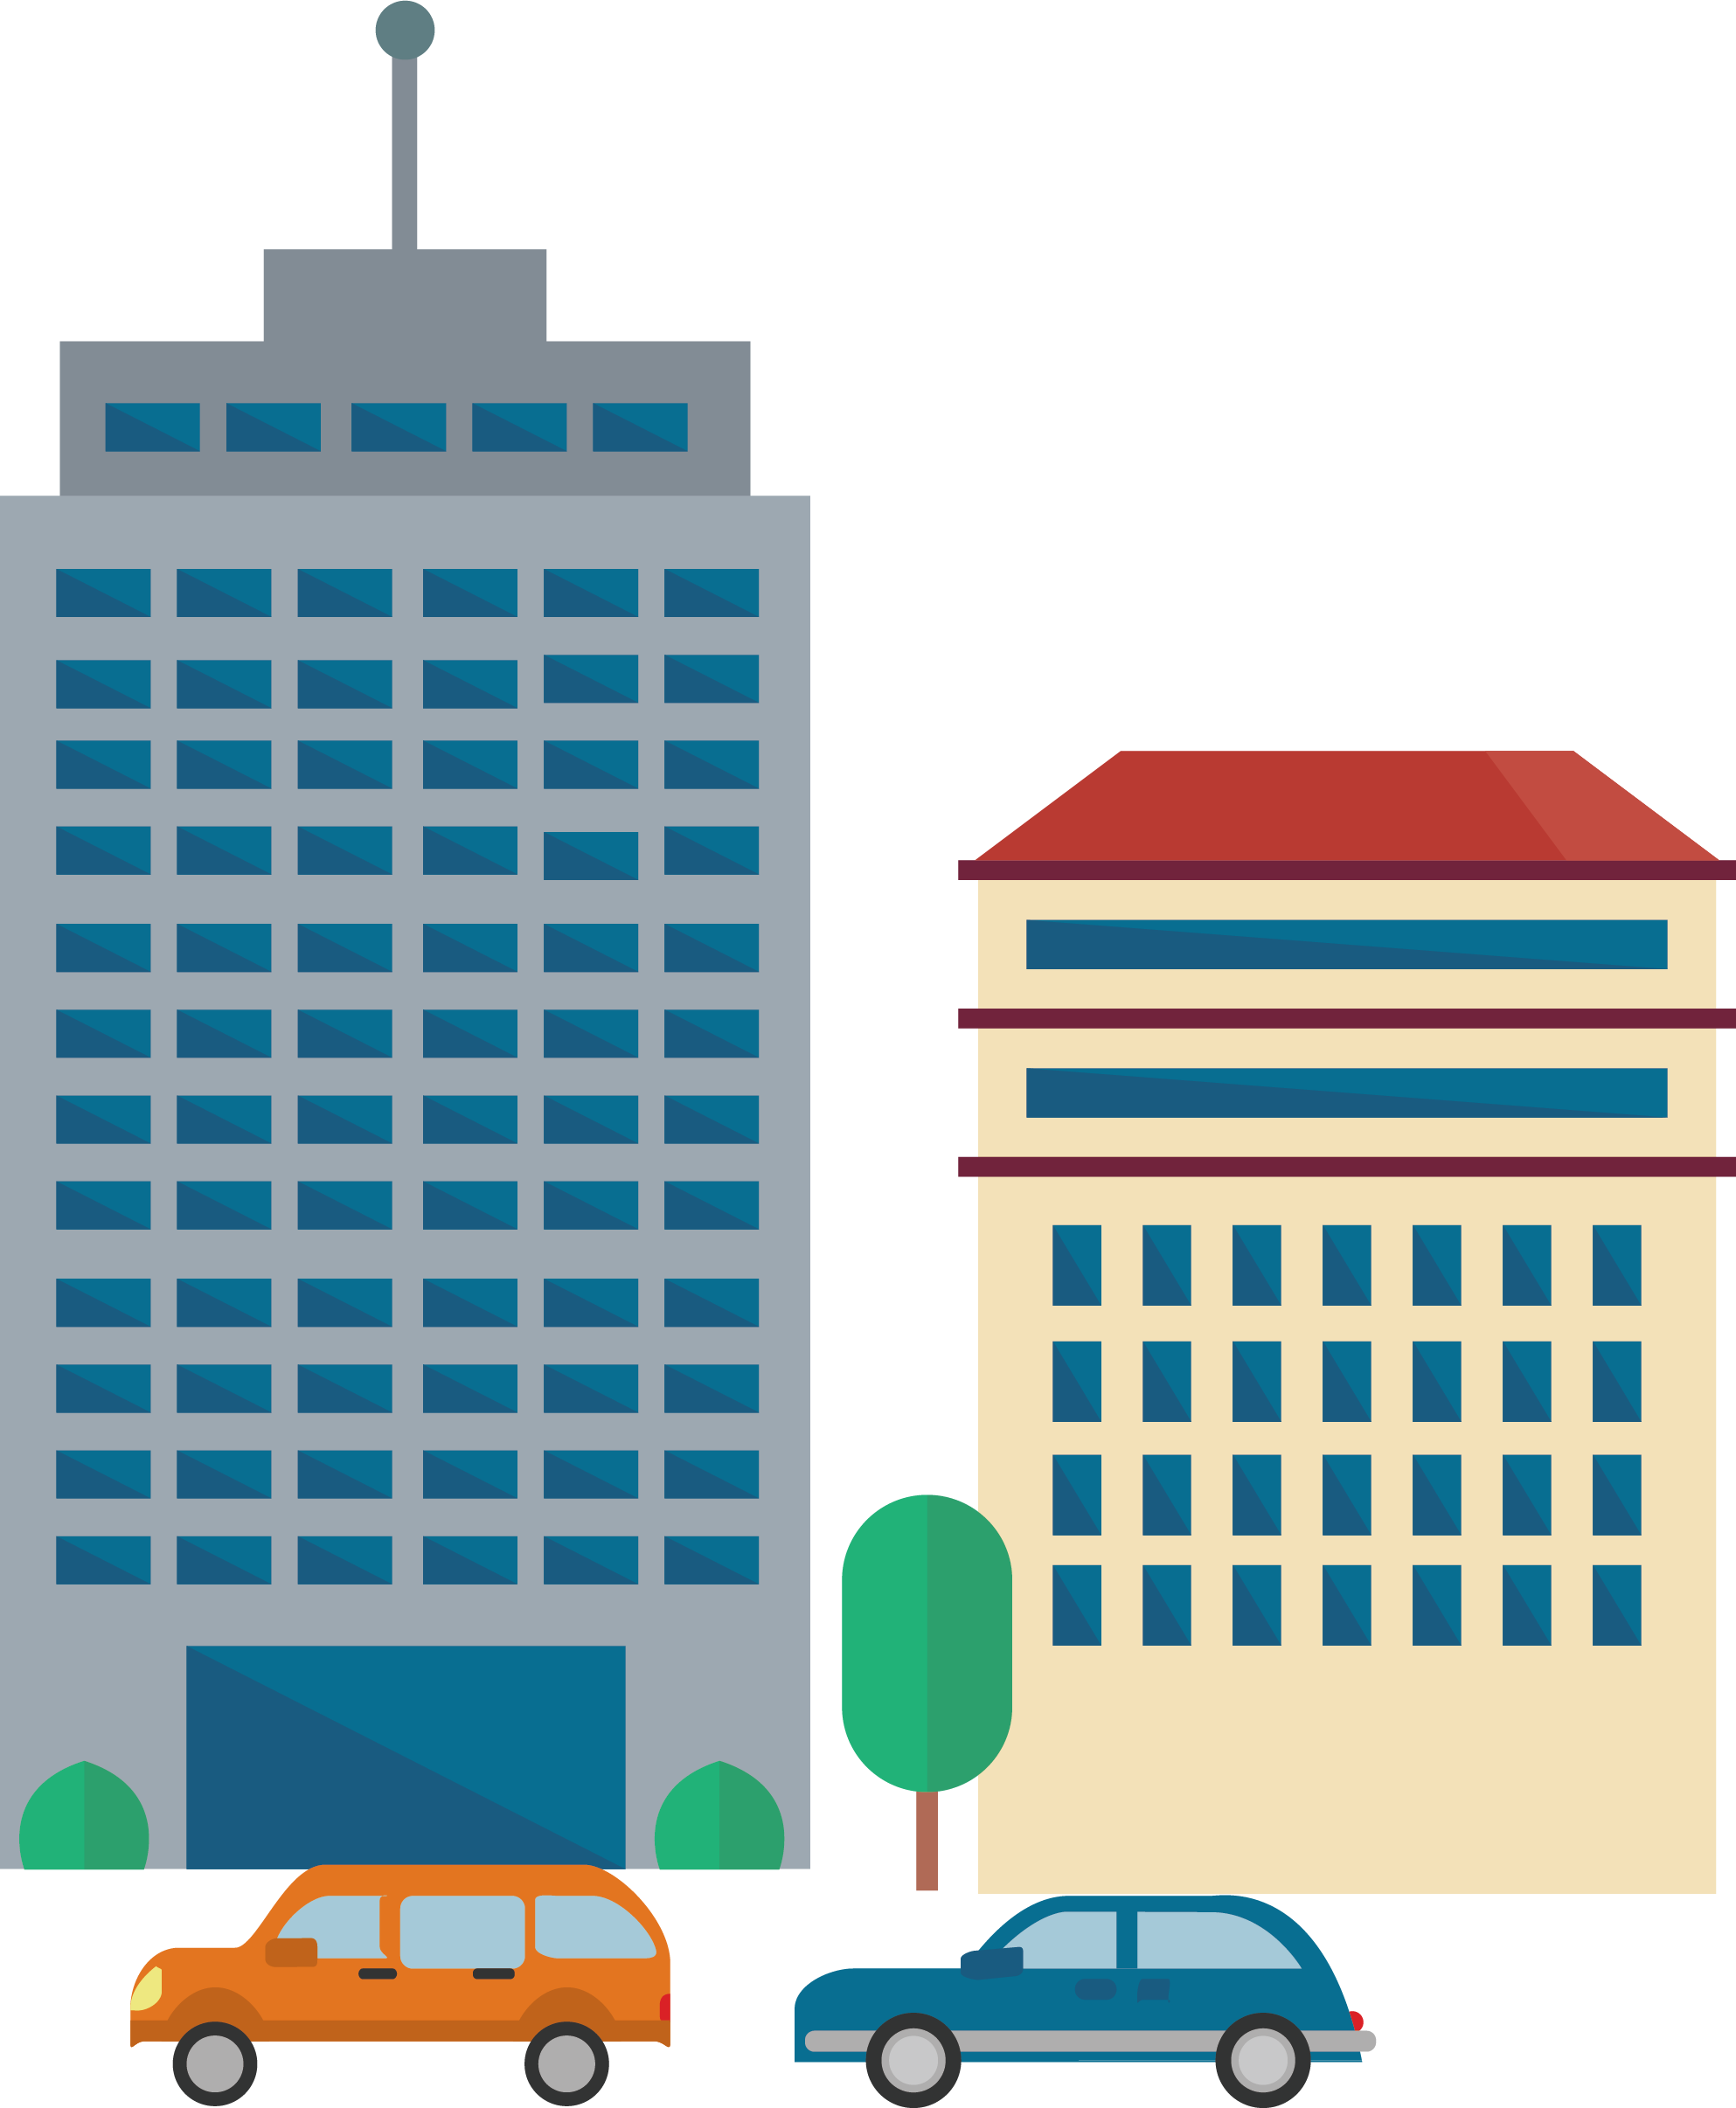 Office building clipart png picture freeuse download Office Building Skyscraper Cartoon - Senior office building 1986 ... picture freeuse download